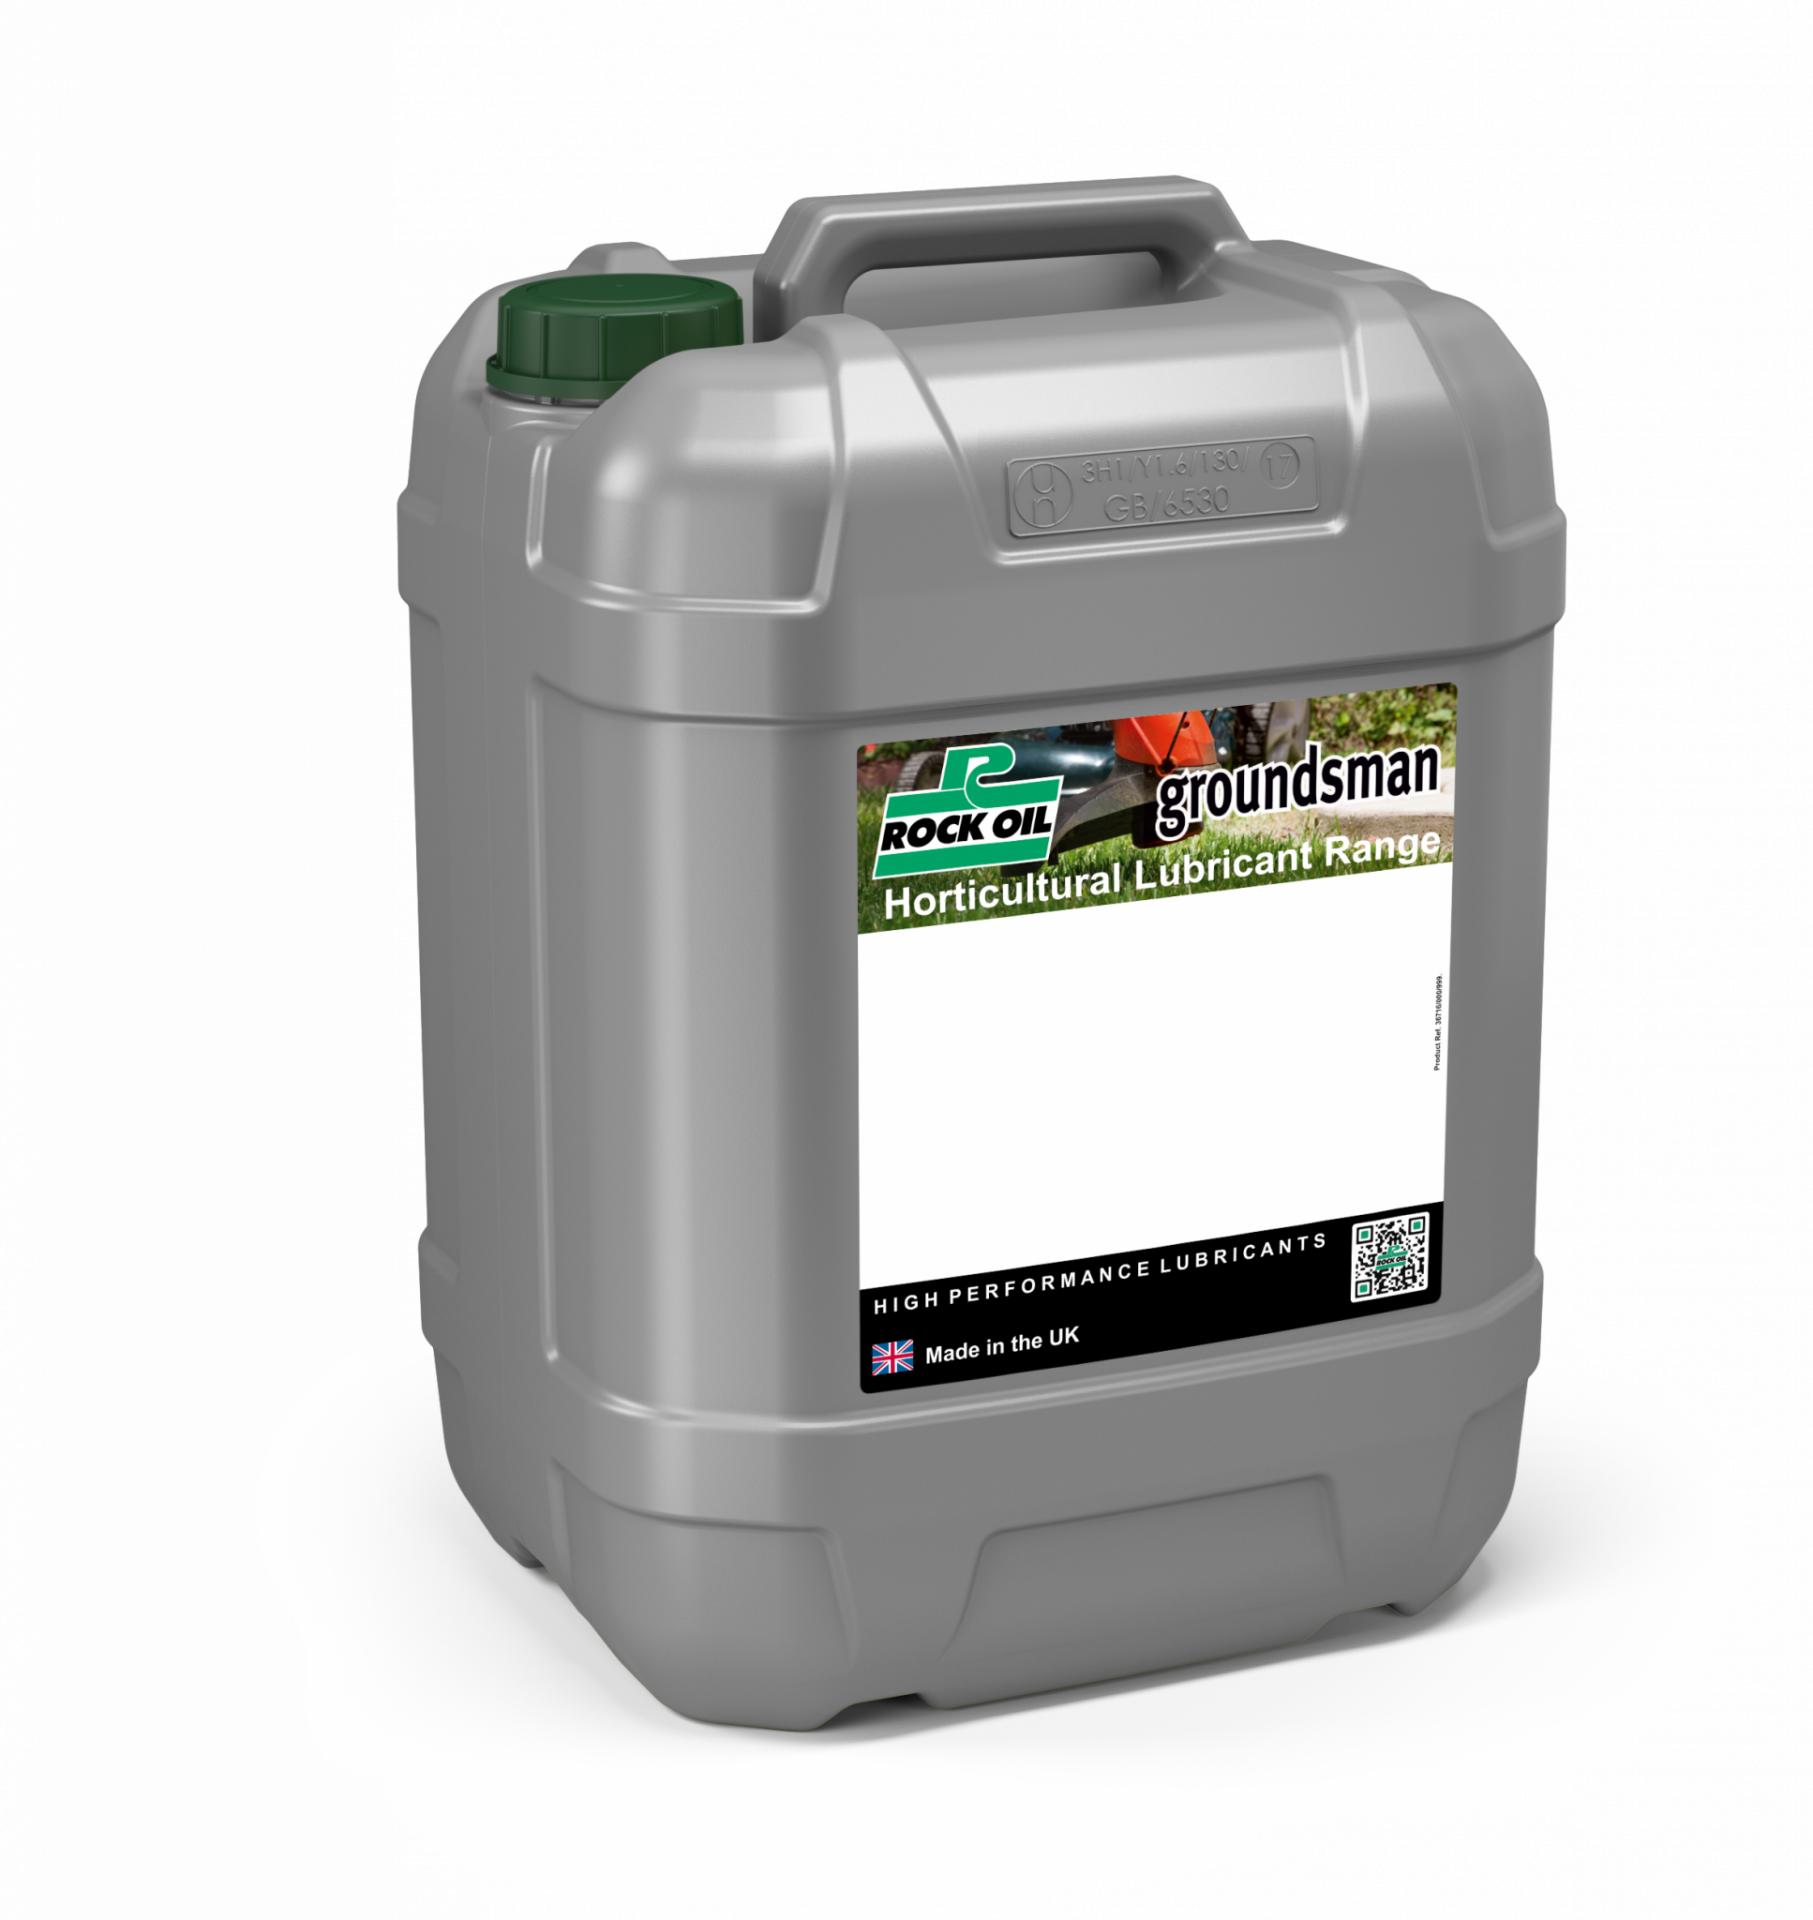 rock groundsman sae 30 engine oil 20 litre radmore tucker. Black Bedroom Furniture Sets. Home Design Ideas